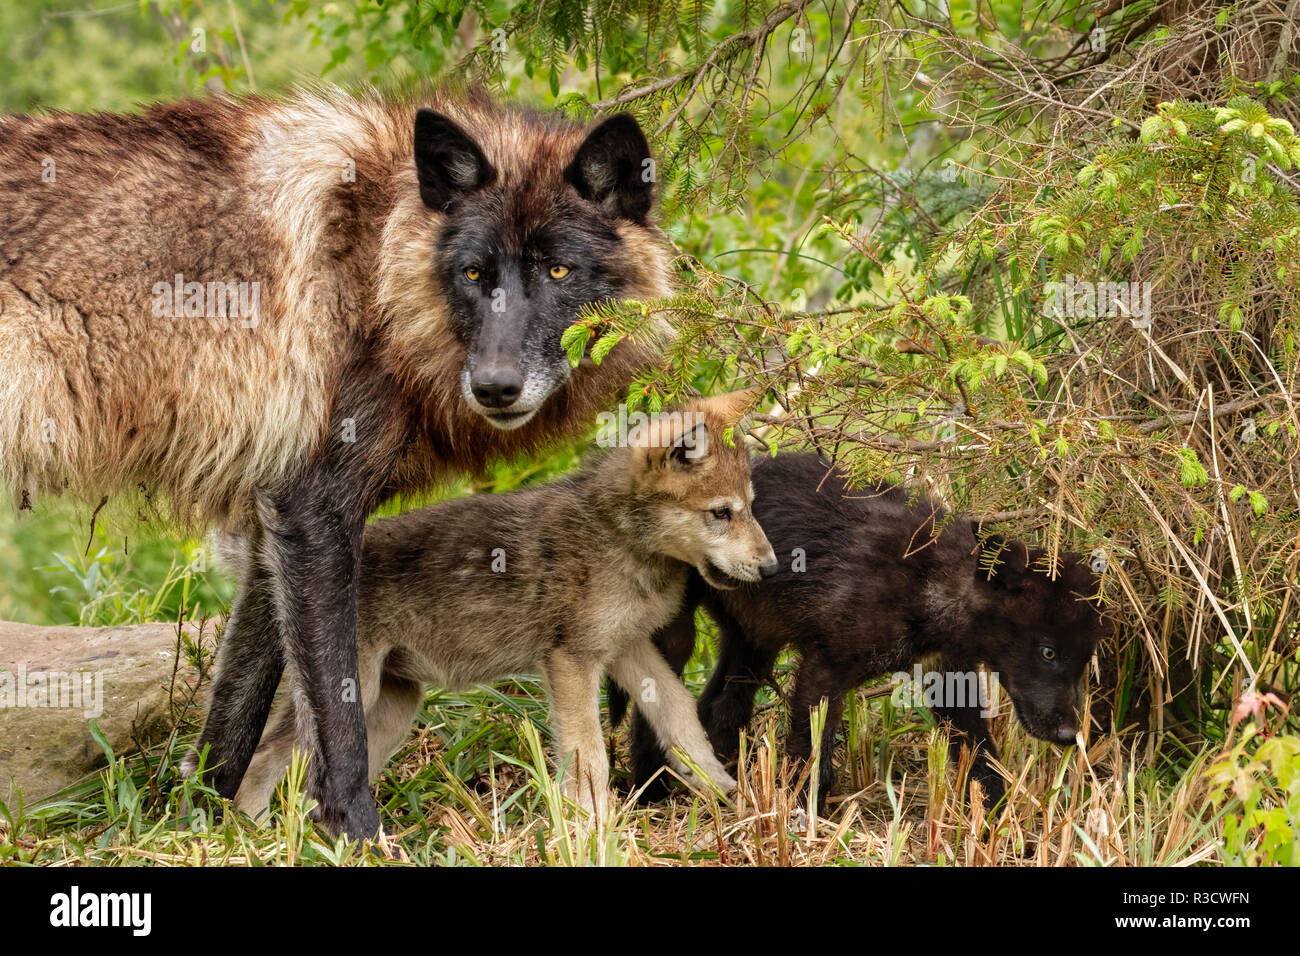 Adult gray wolf with pups wrestling, Canis lupus lycaon - Stock Image